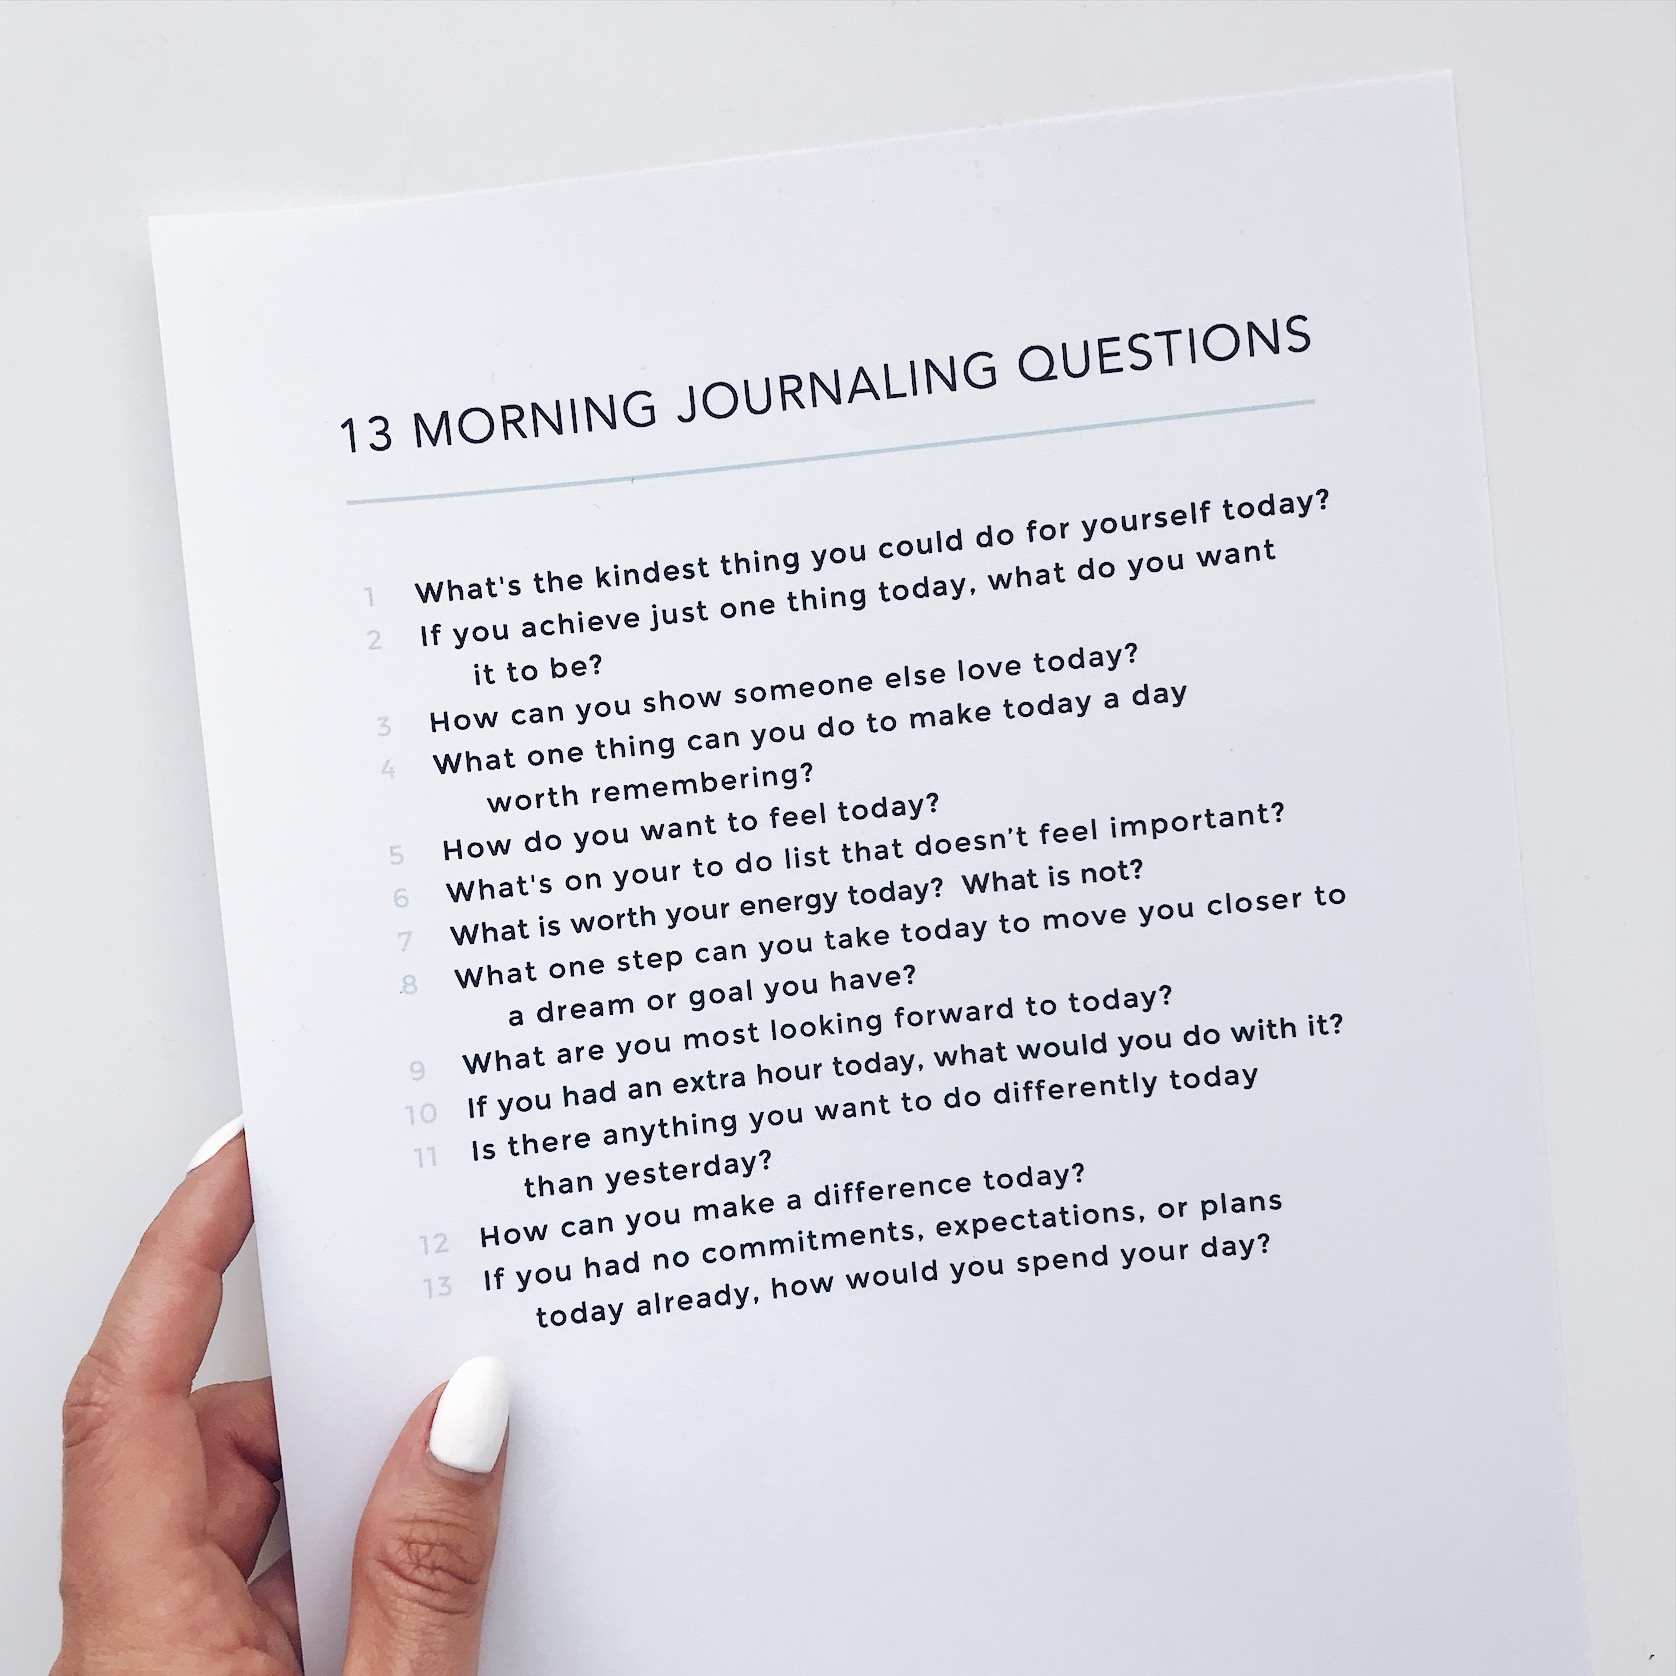 13 Morning Journaling Questions